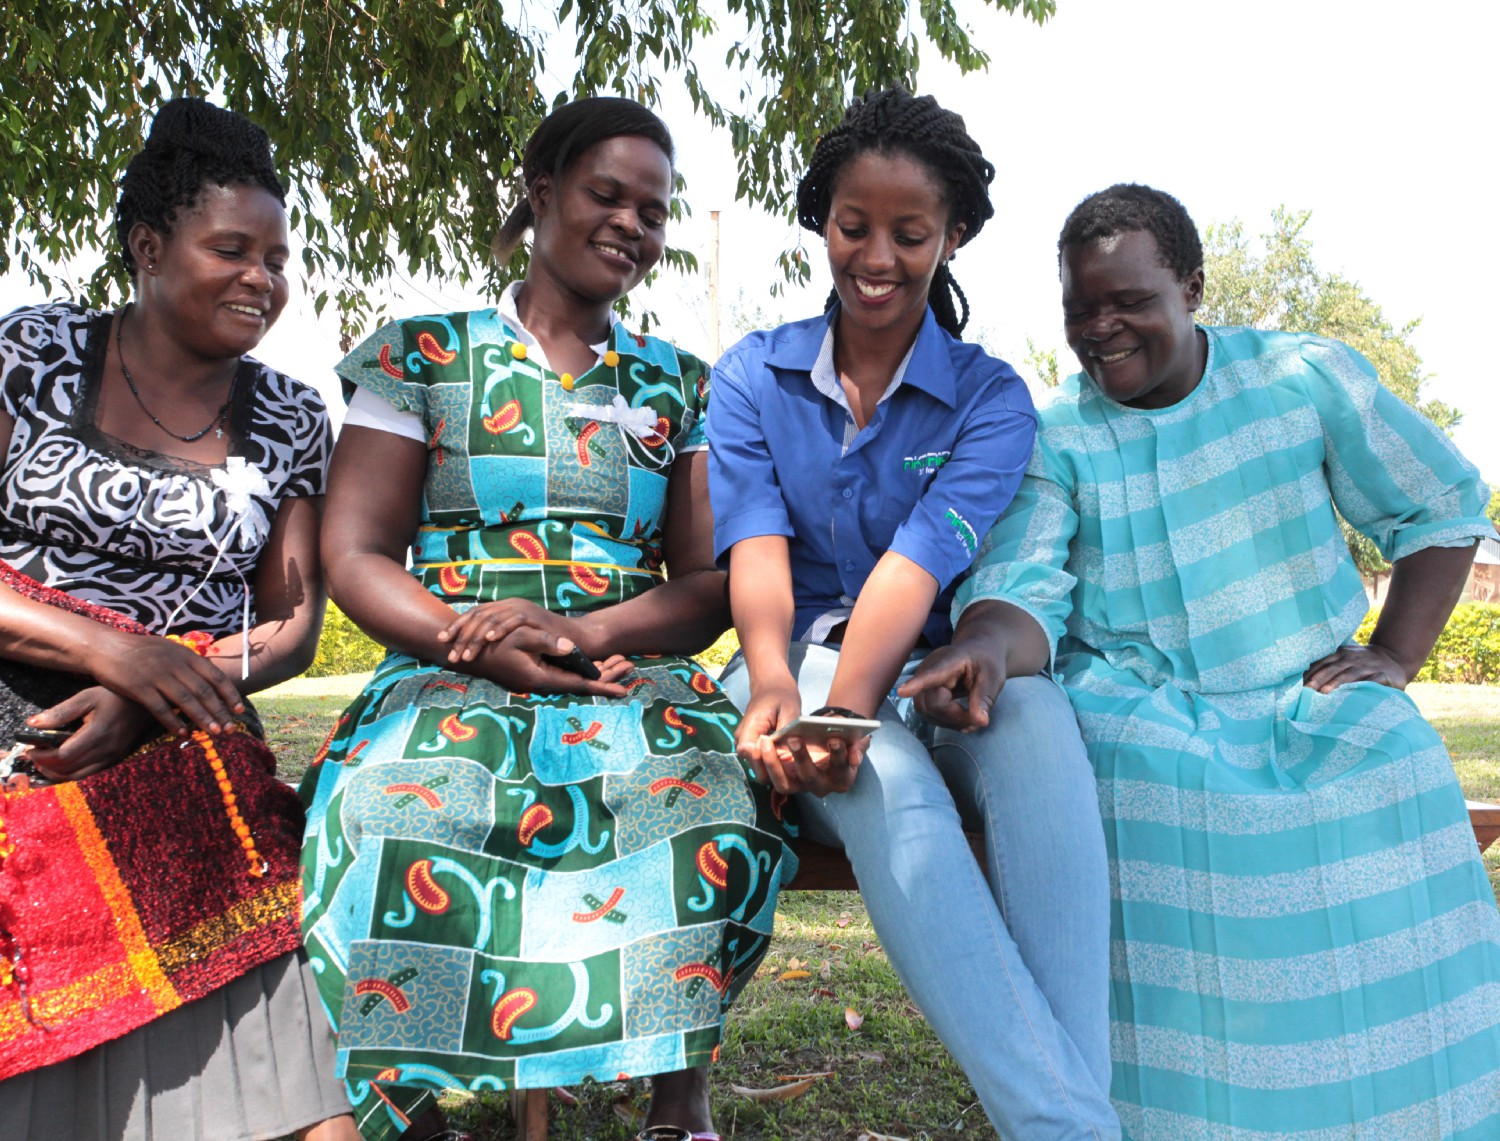 Esther Karwera, second from right. / Photo courtesy of Esther Karwera